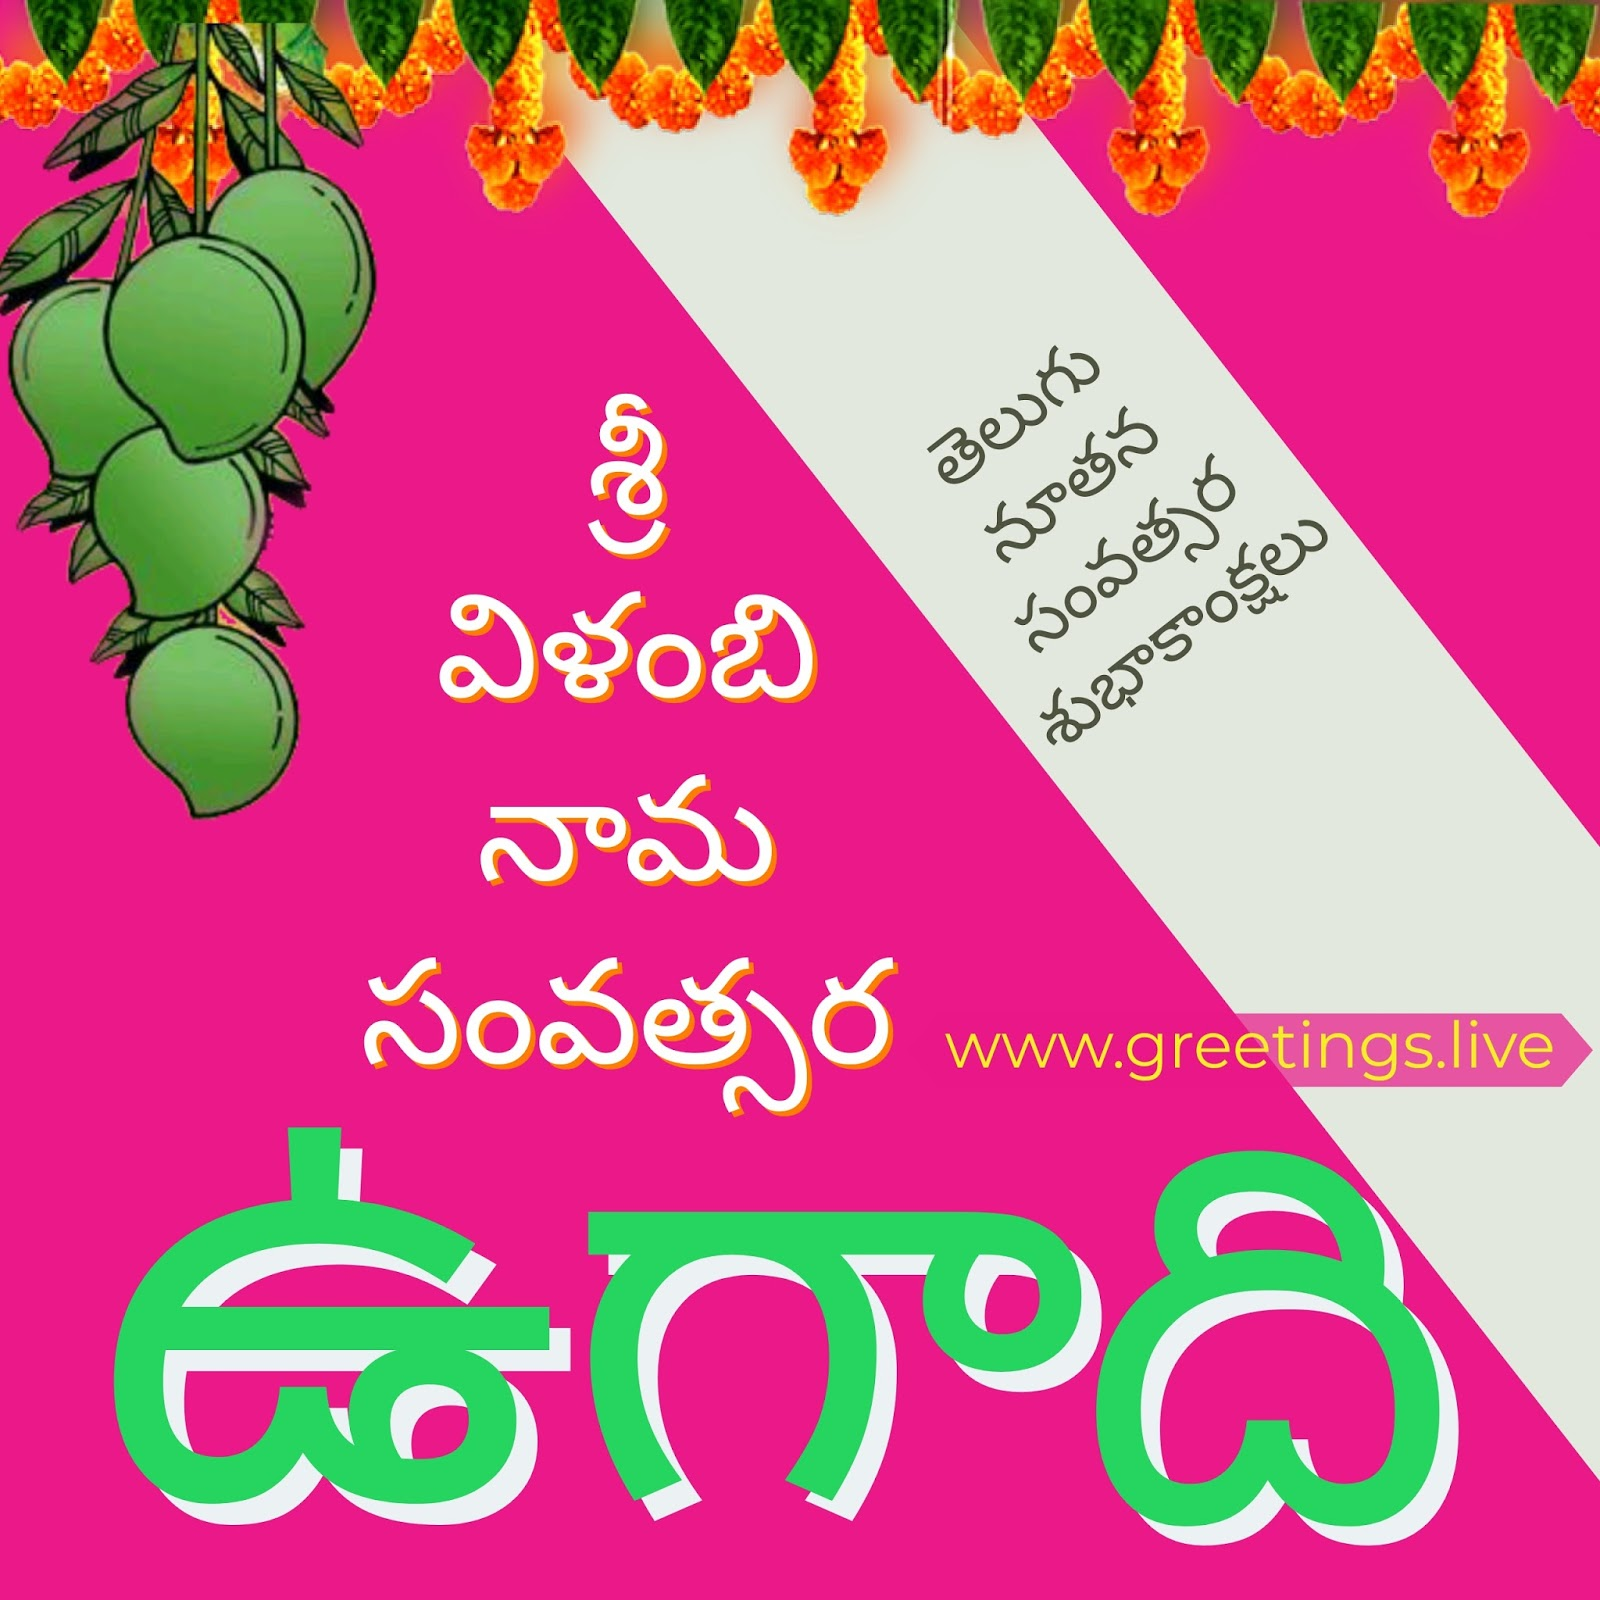 Good words telugu good words on angry management ugadi 2018 telugu greetings collections hd m4hsunfo